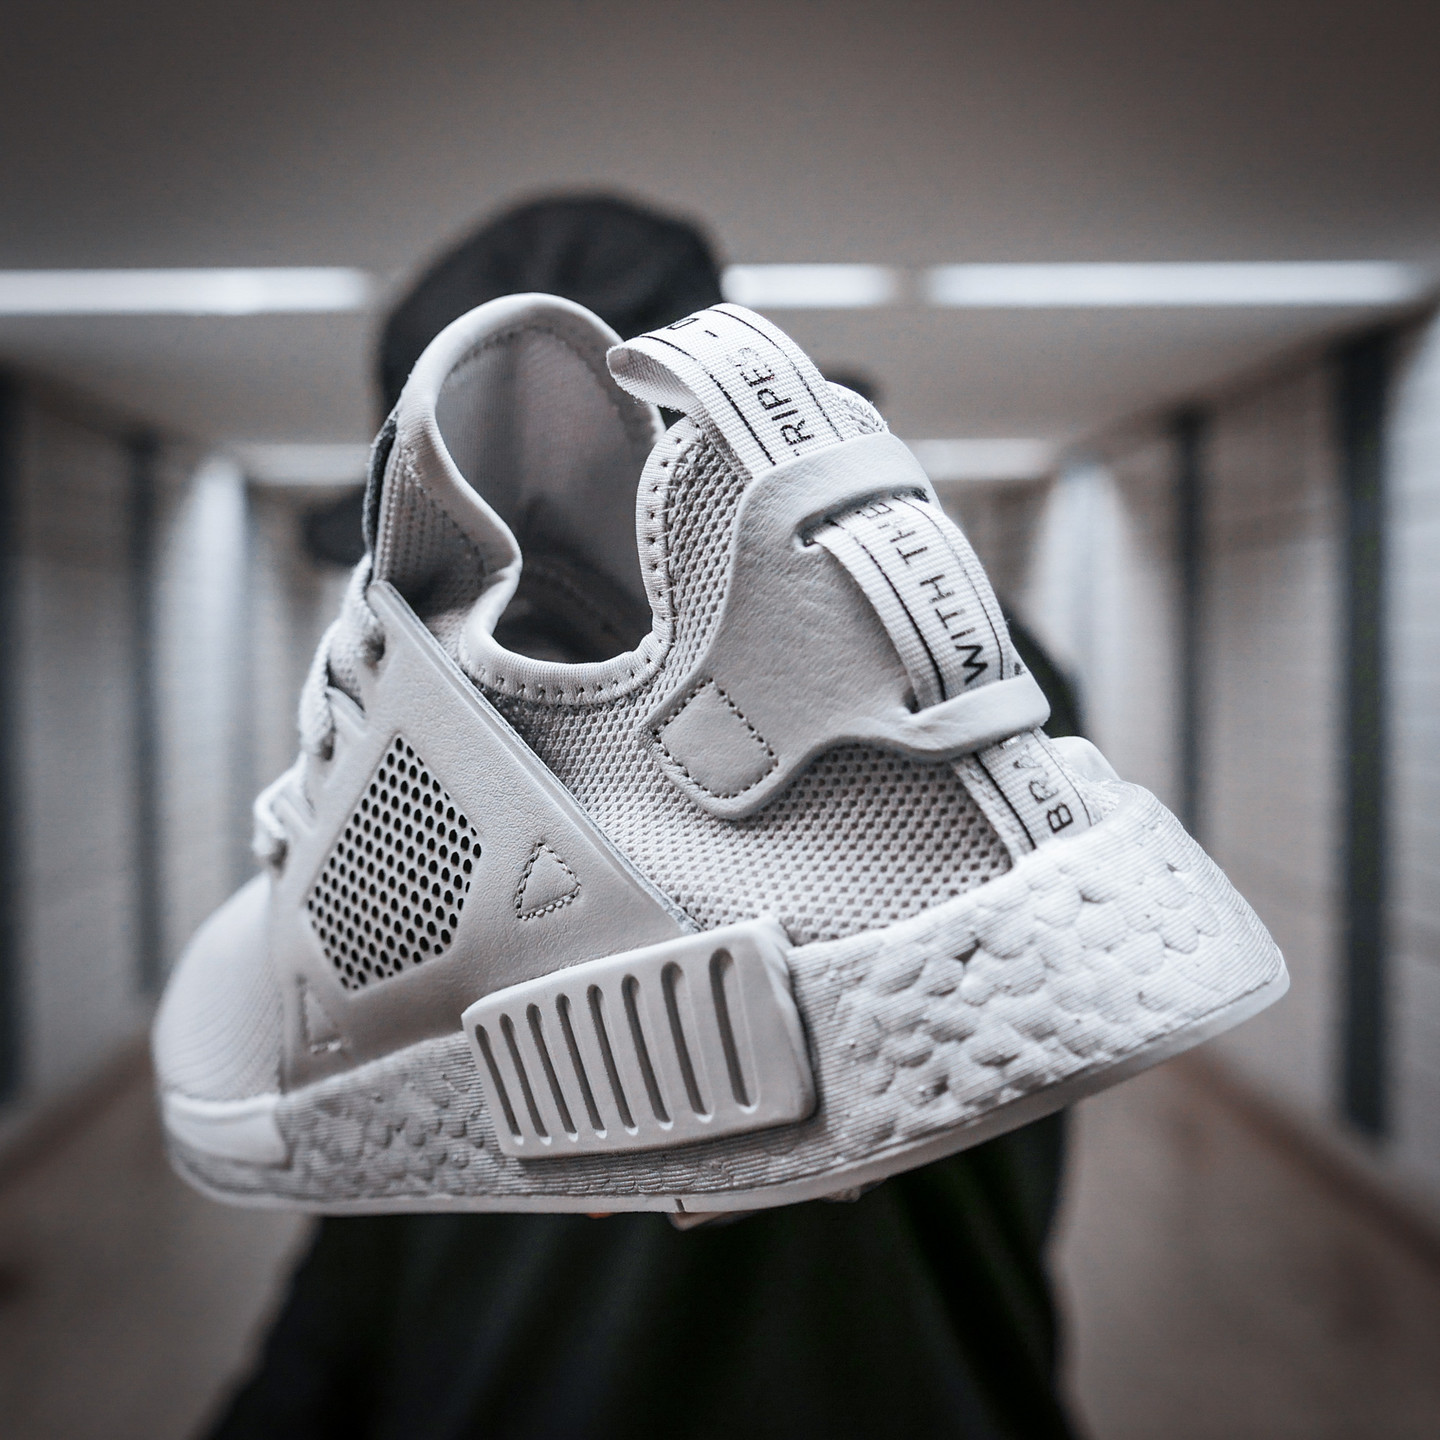 Adidas NMD XR1 Leather Cage Silver Grey BY9923